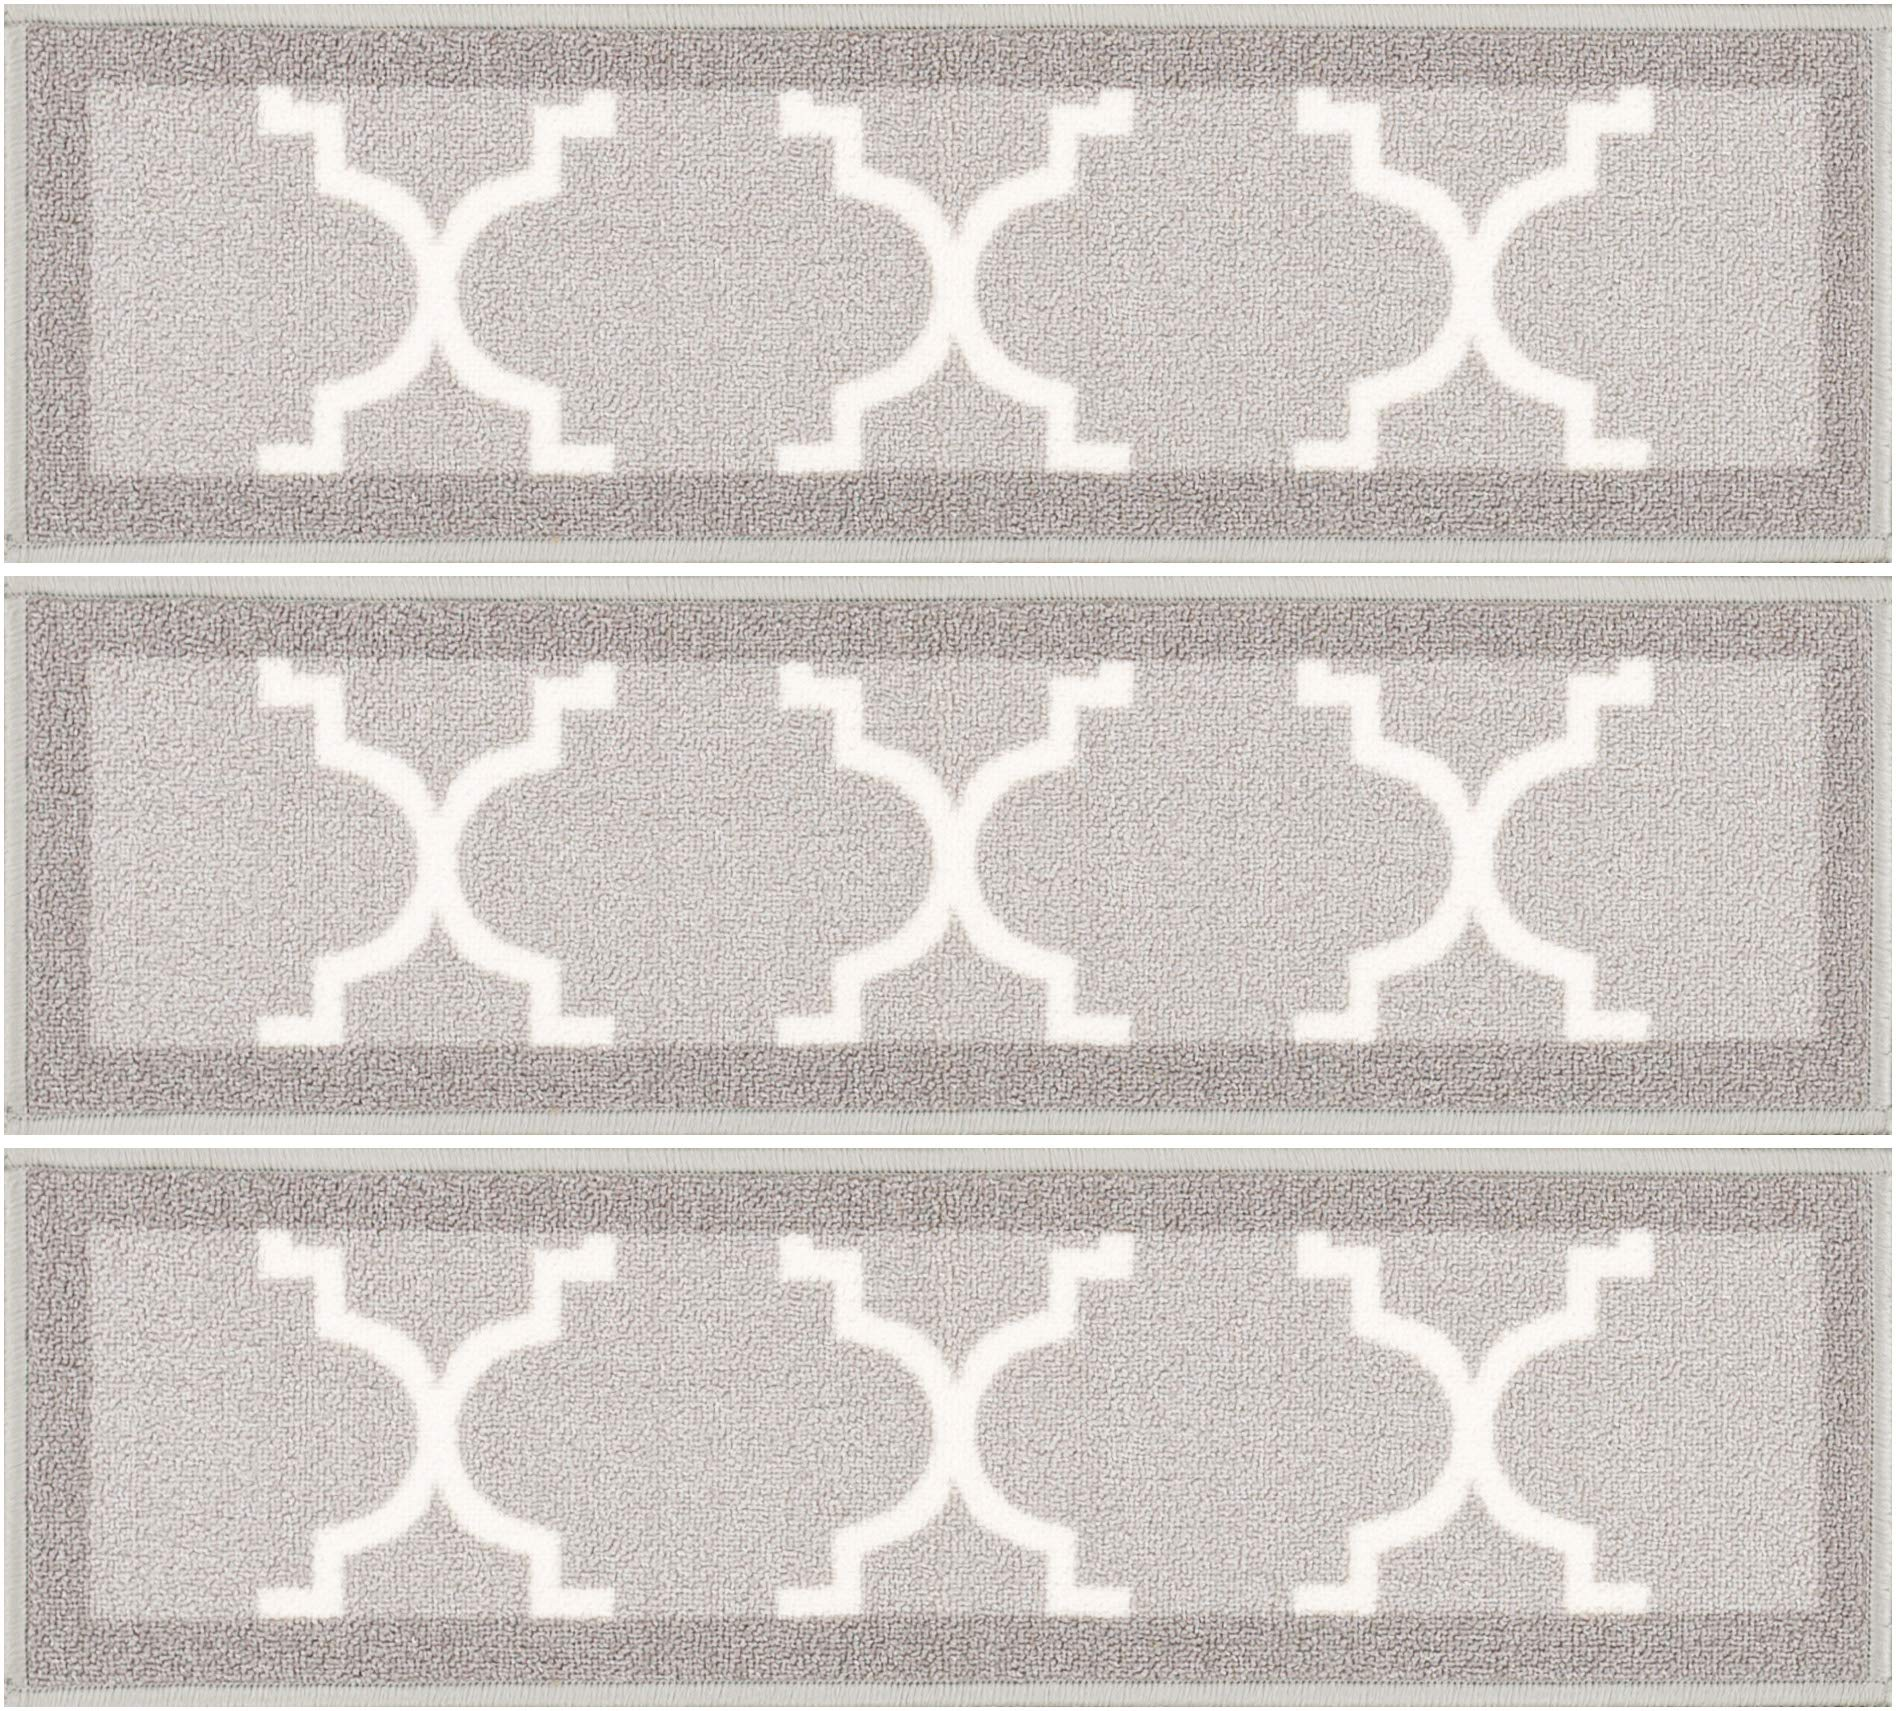 [Set of 7] Grey Stair Tread Rugs | Modern Design Trellis Lattice Carpet Pads [Easy to Clean] Rubber Non-slip Non-skid Backing | Nylon Low Pile 9'' x 31'' Stair Treads